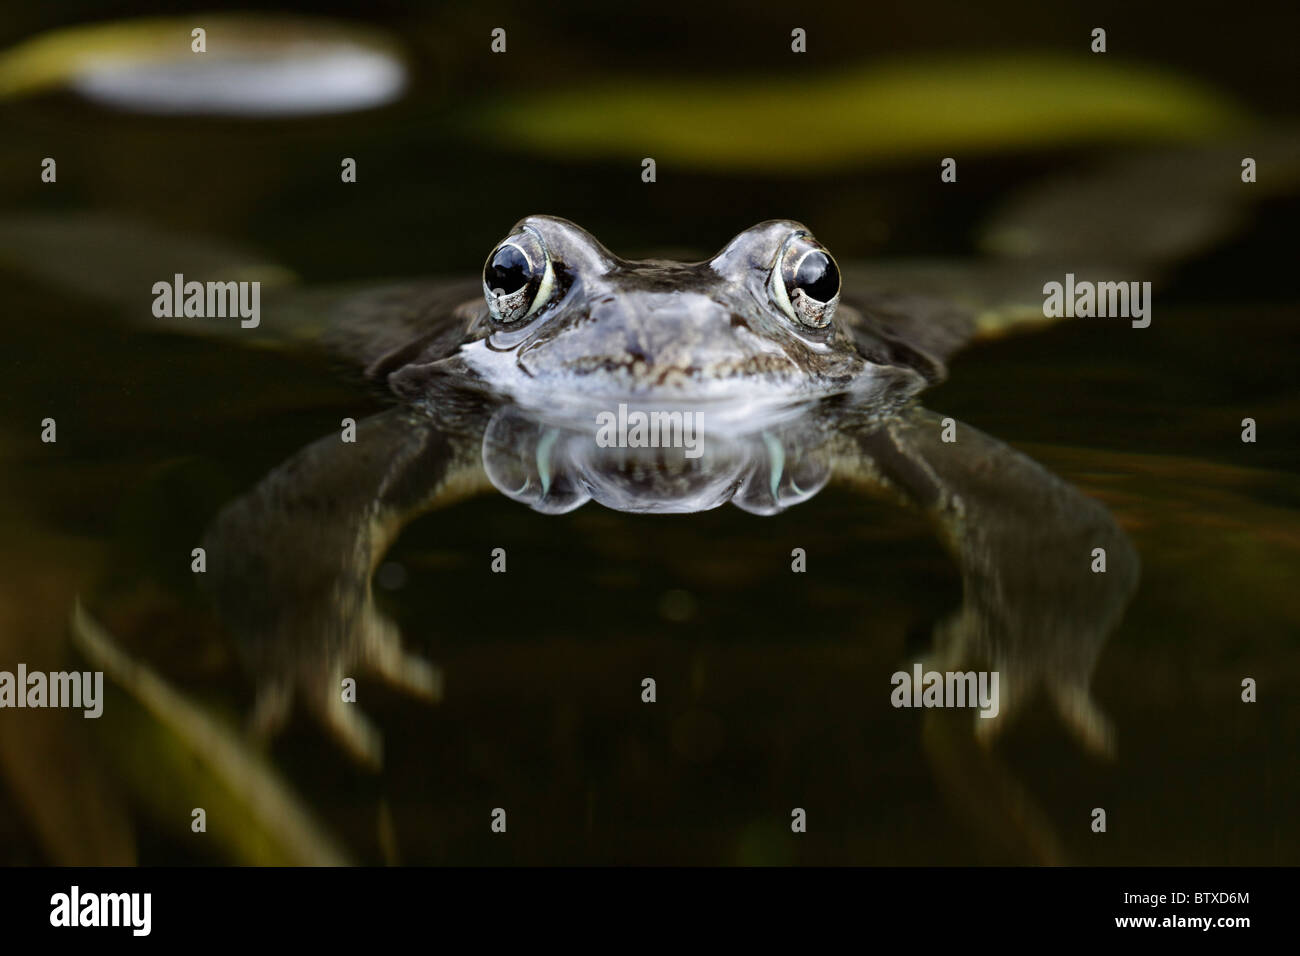 Common Frog (Rana temporaria), in garden pond, Germany - Stock Image